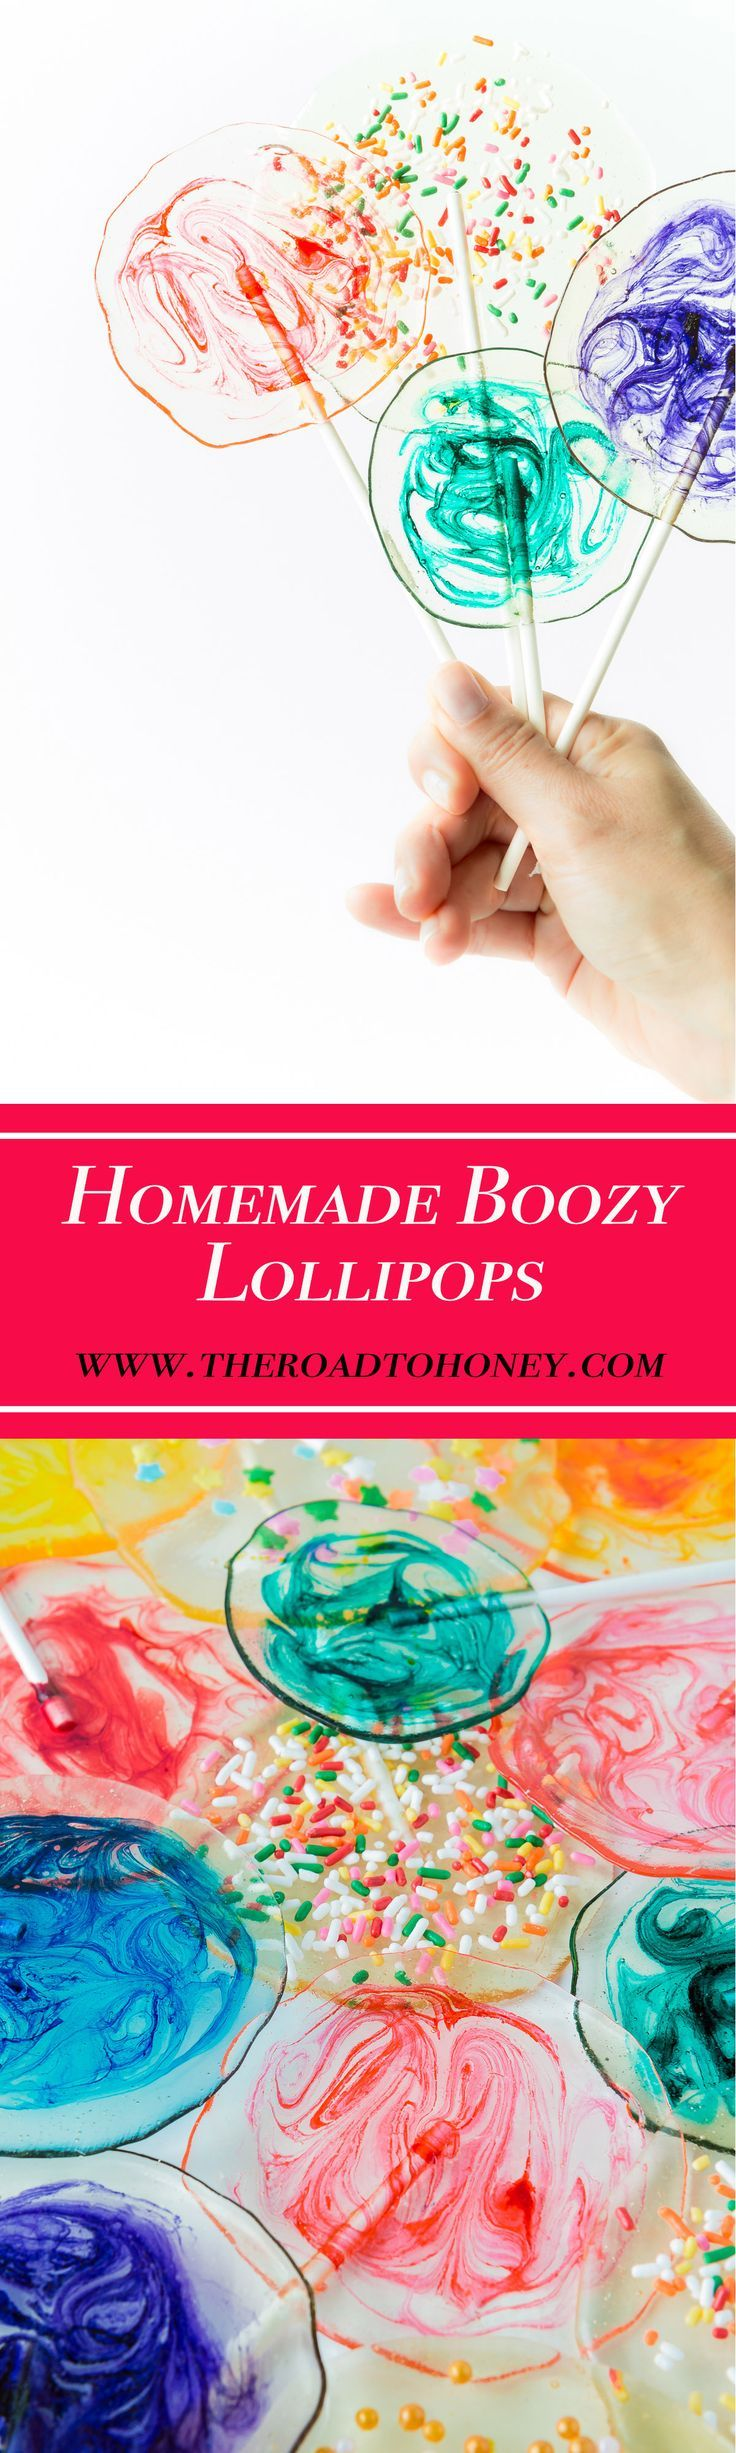 Homemade Boozy Lollipops - Making your own crystal clear candy homemade lollipops with fun & colorful swirls is quick & easy. They are easily customizable and are perfect for birthdays, weddings & other whimsical events.  Click for RECIPE. #HomemadeLollipops #HomemadeSuckers #HomemadeCandy